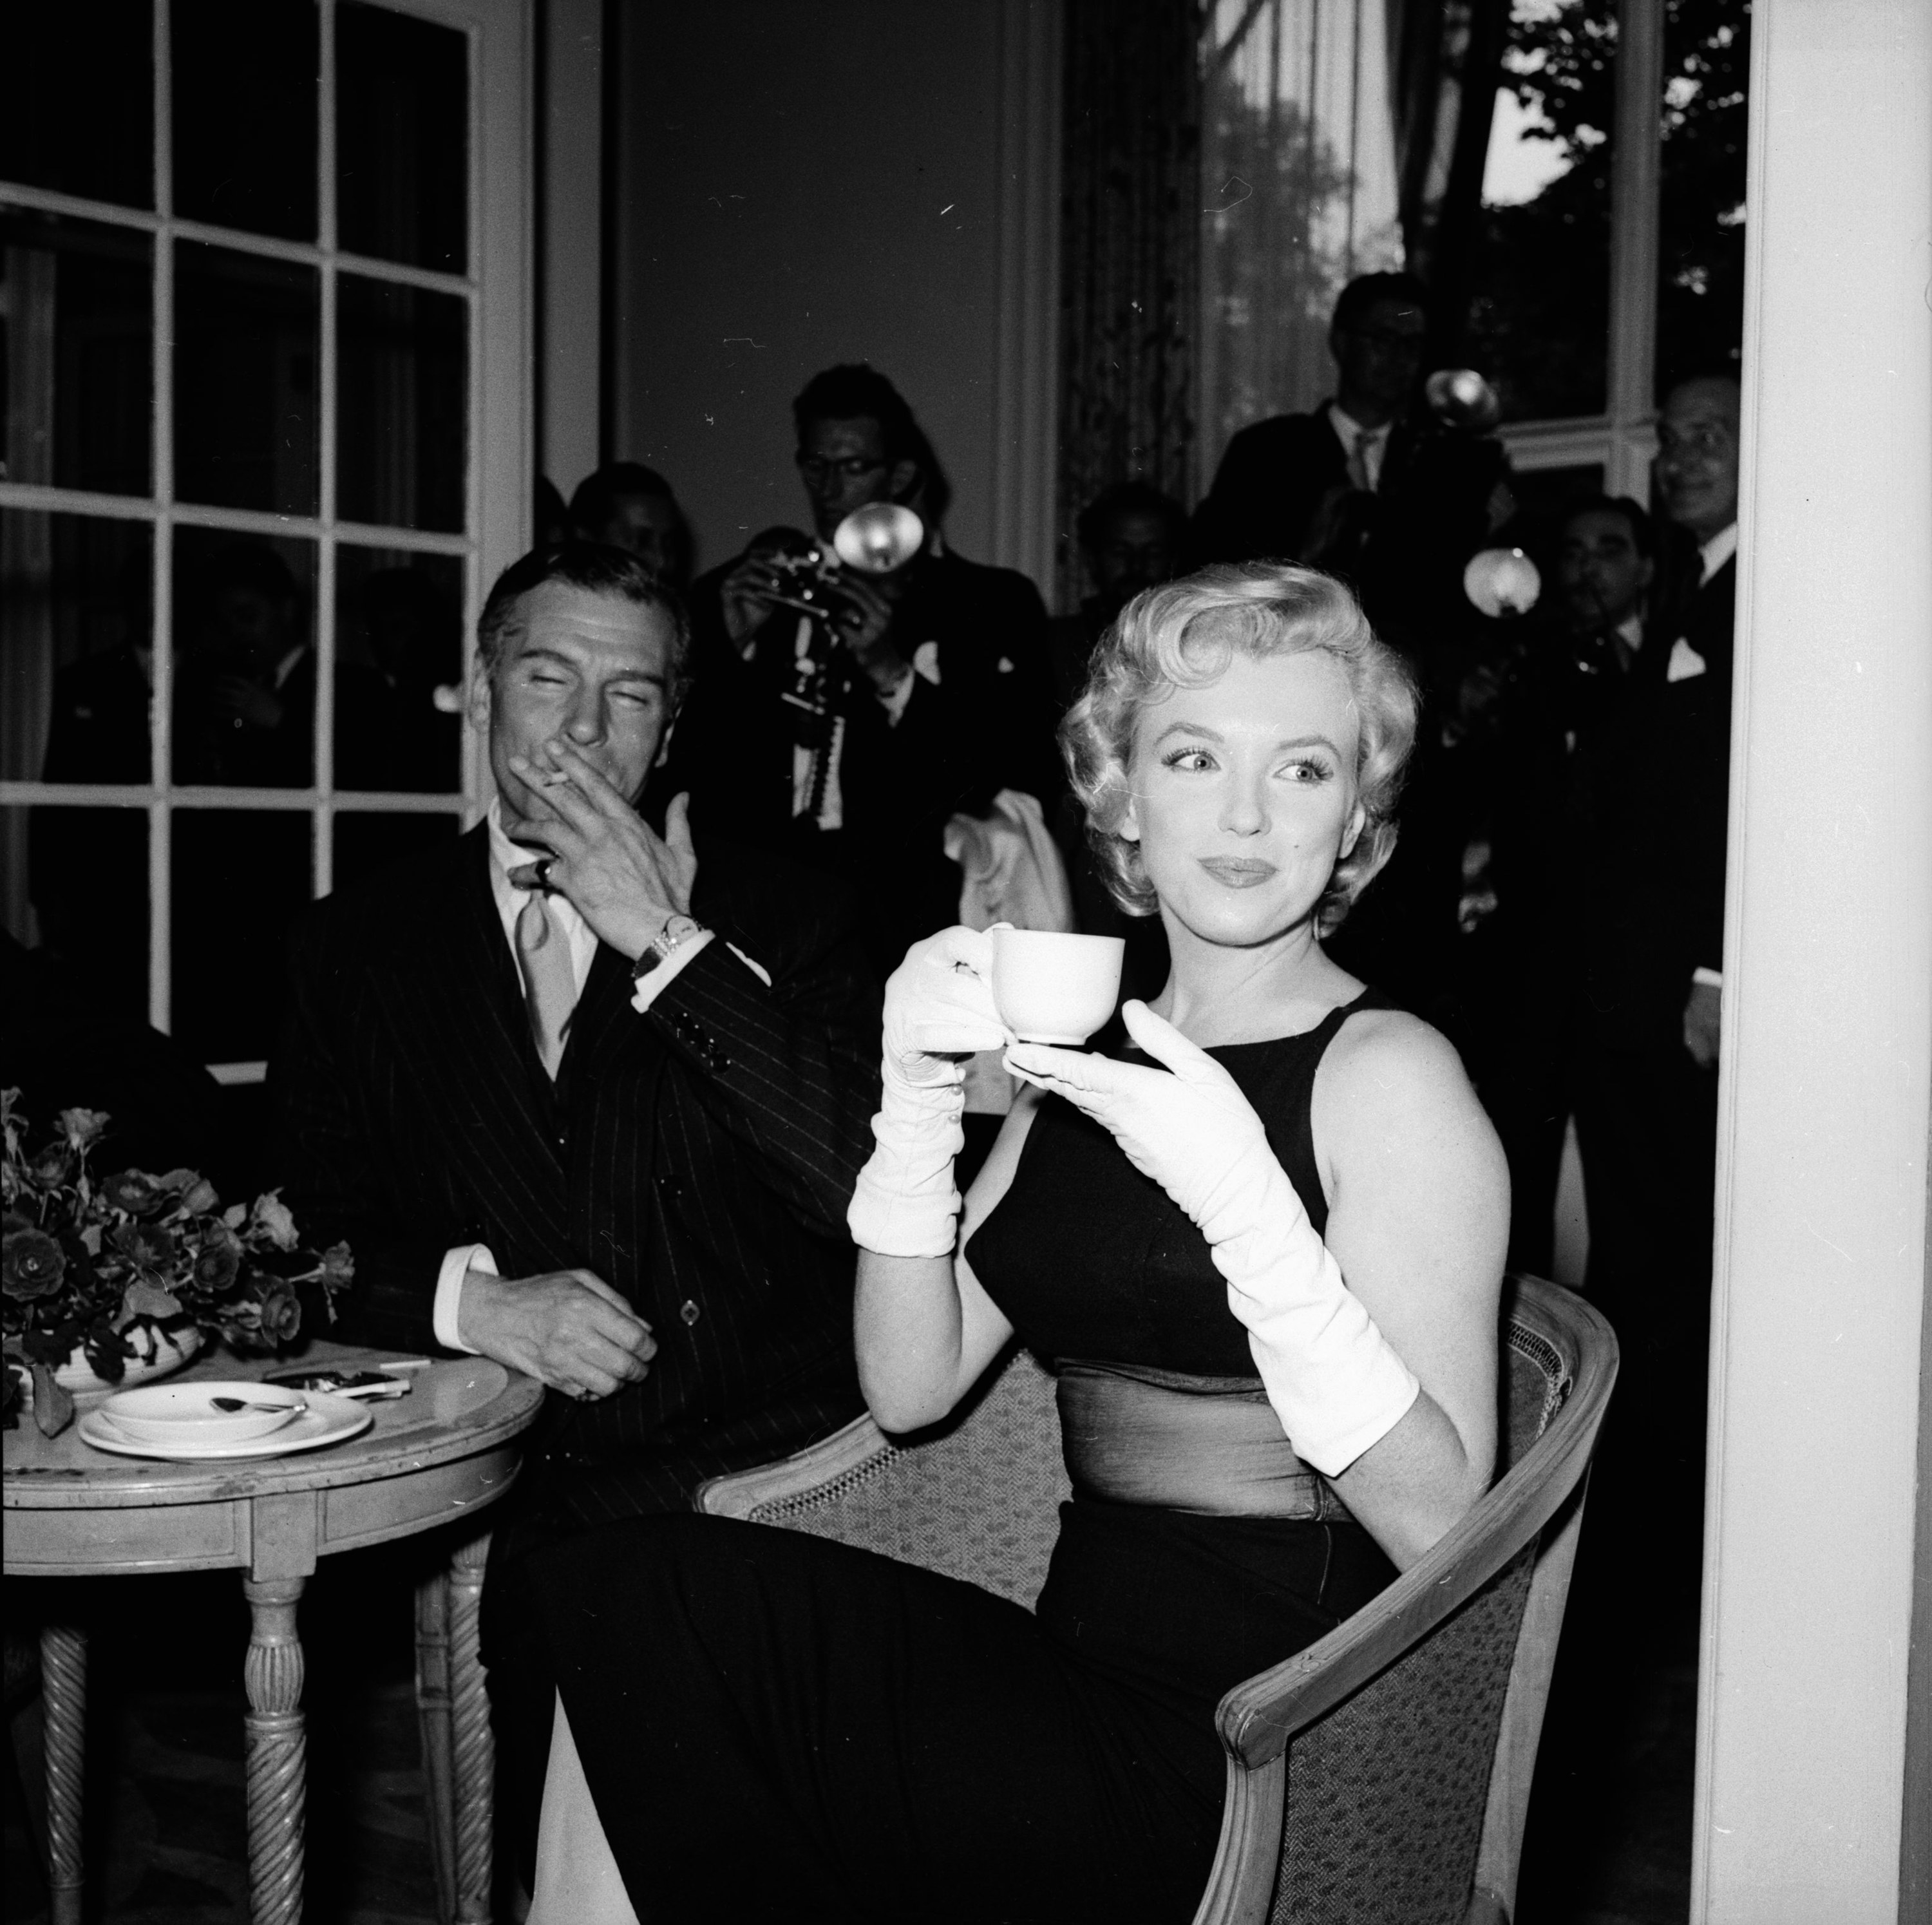 Marilyn Monroe sipping tea and wearing long gloves at a party